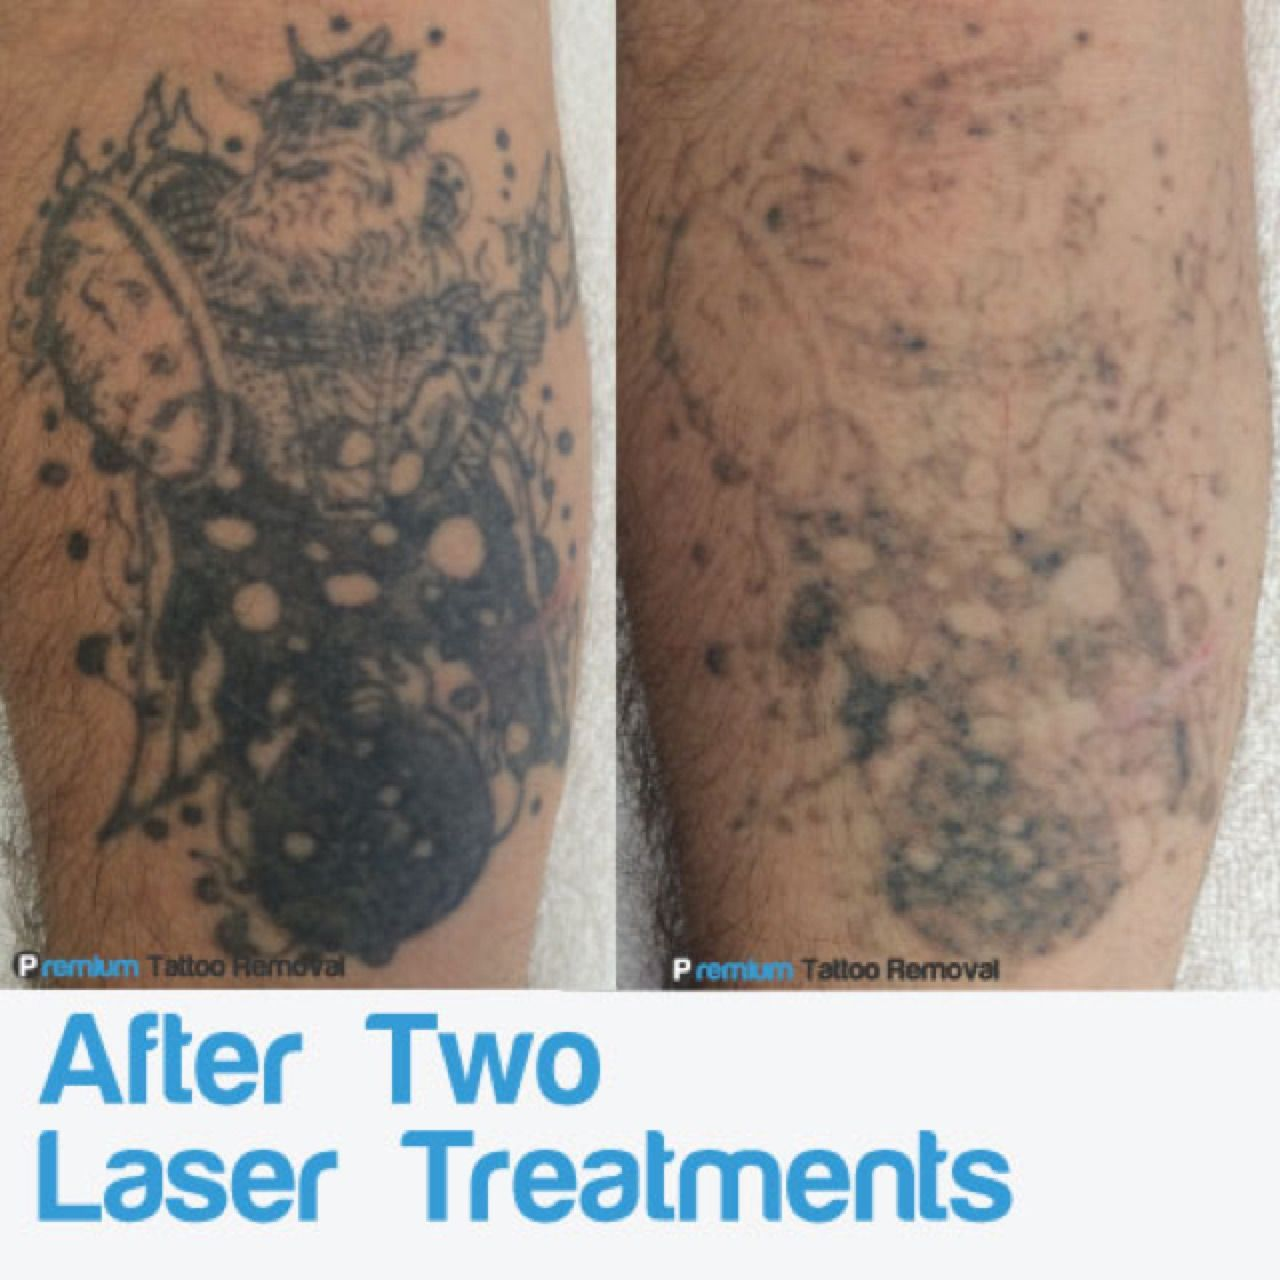 After two treatments, this lower arm tattoo is showing